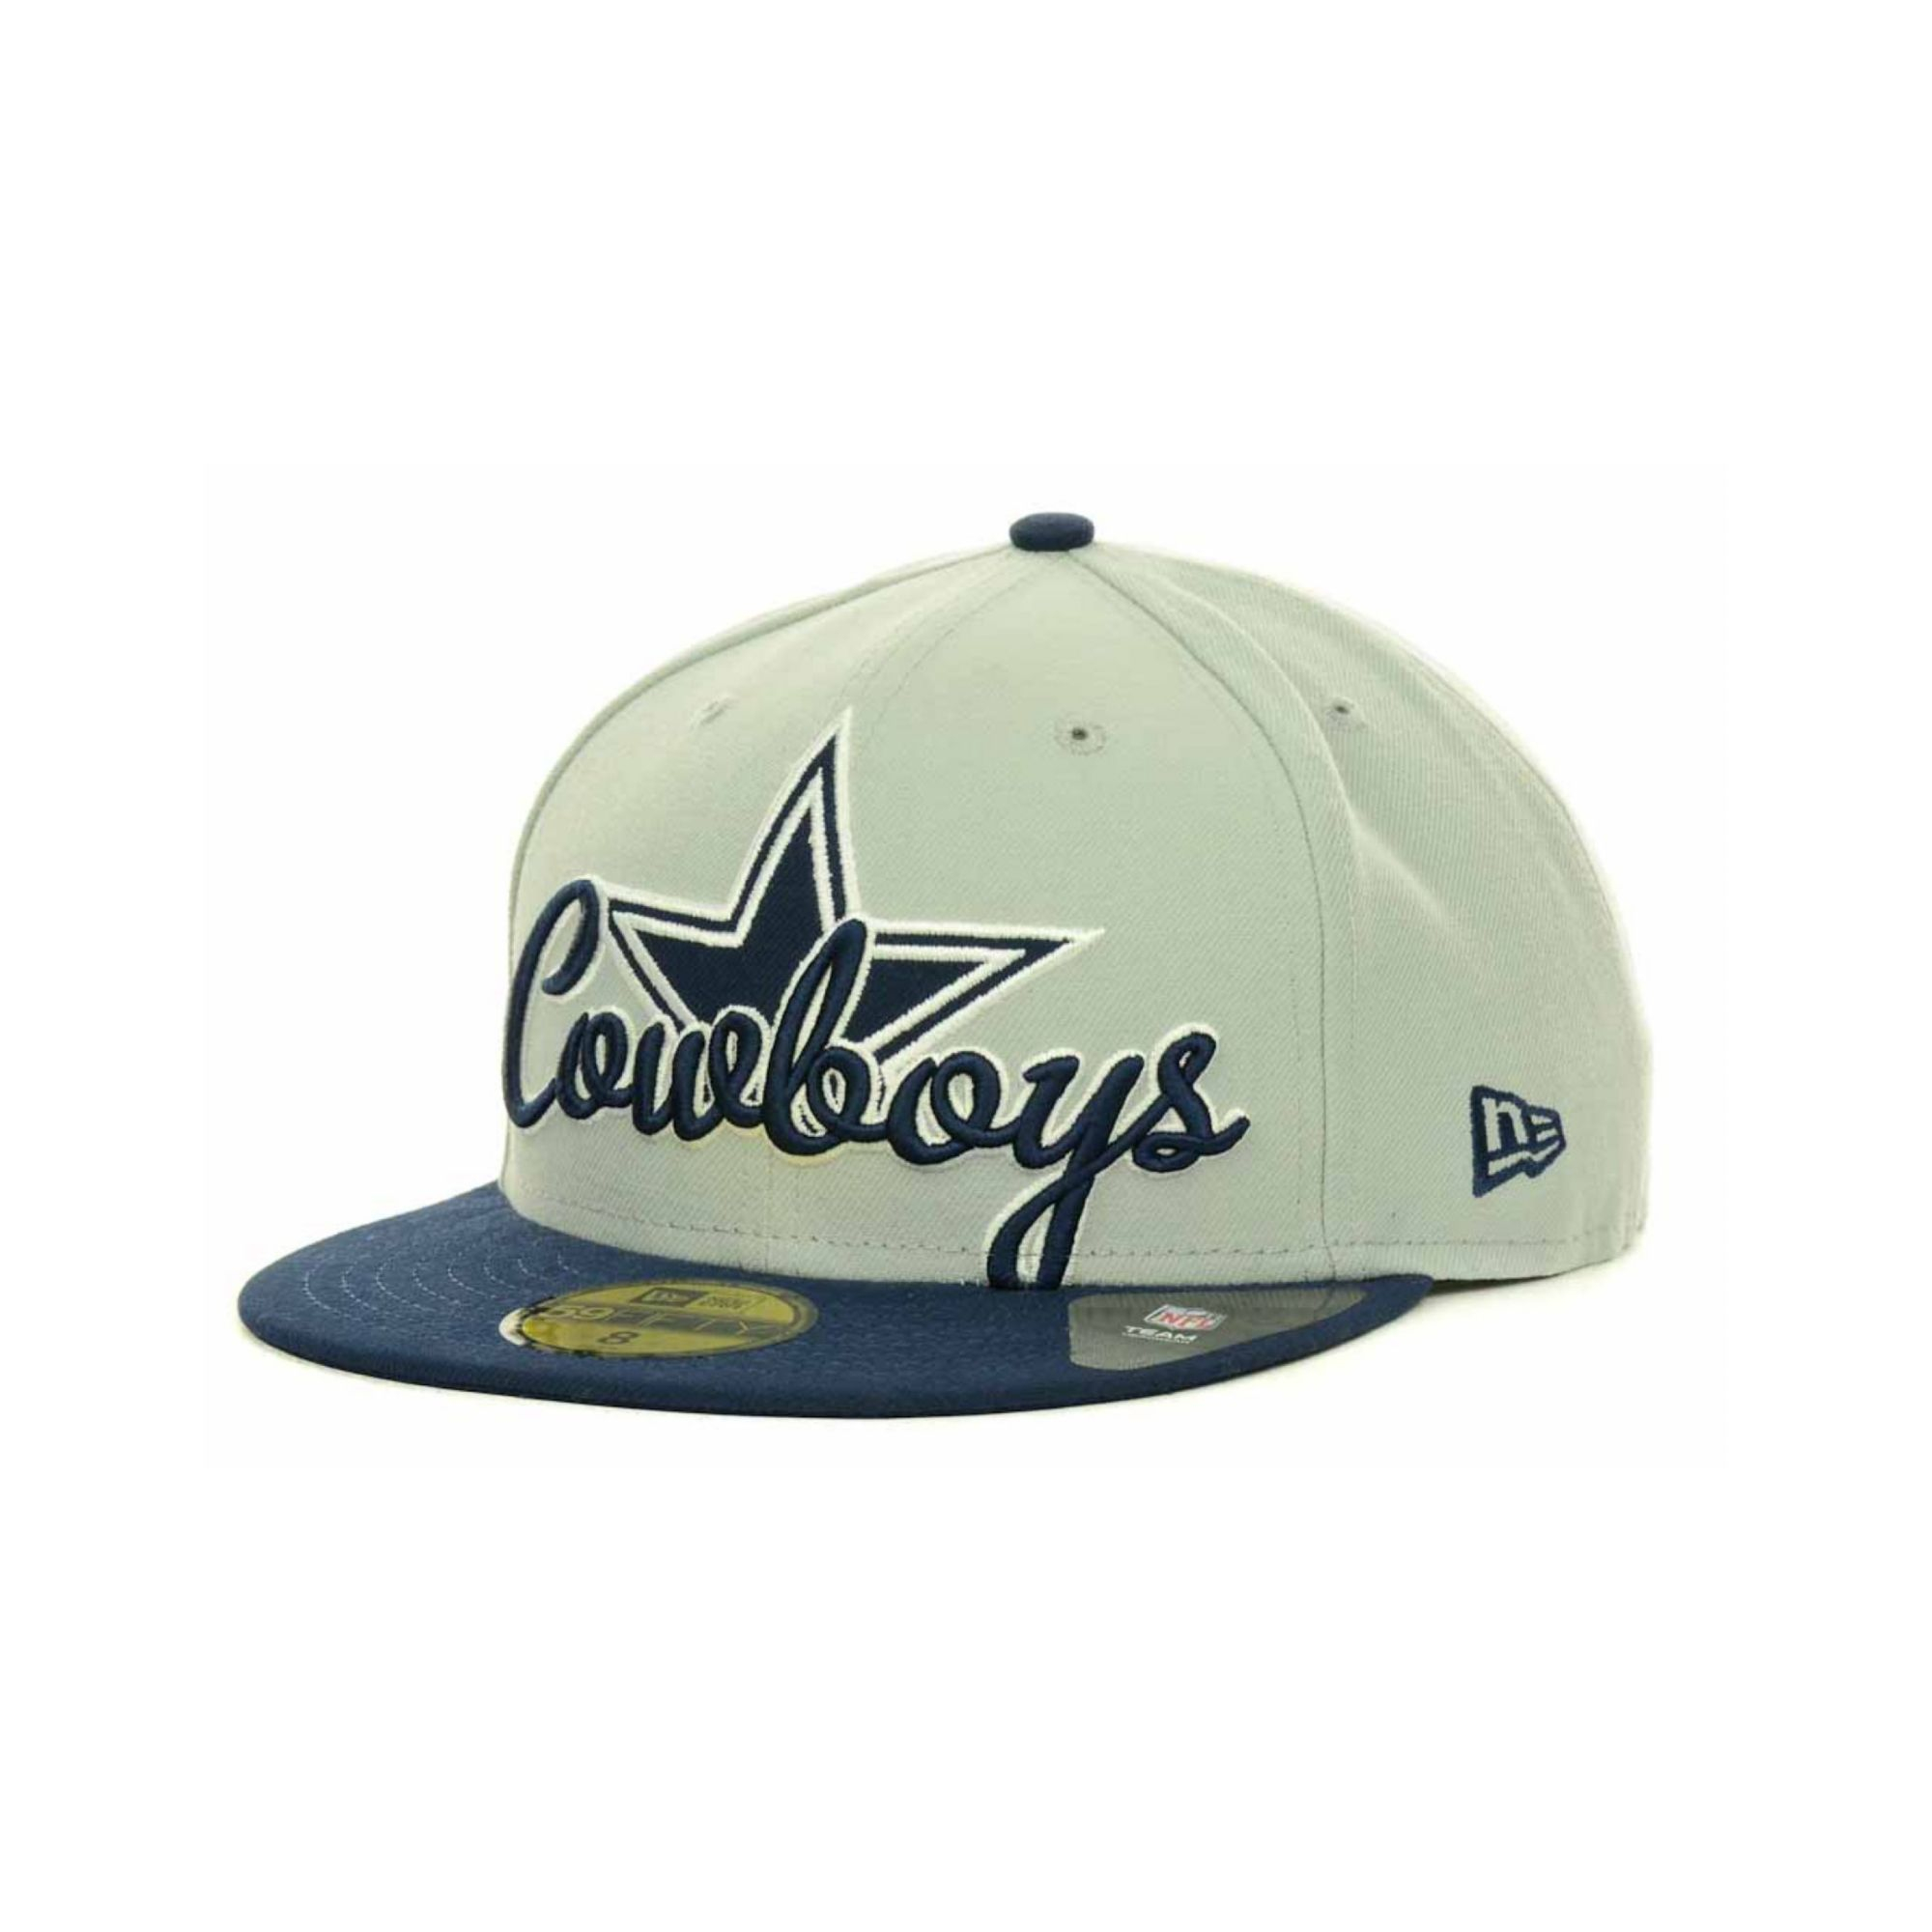 238758dadd563d KTZ Dallas Cowboys Script Down 59fifty Cap in Blue for Men - Lyst